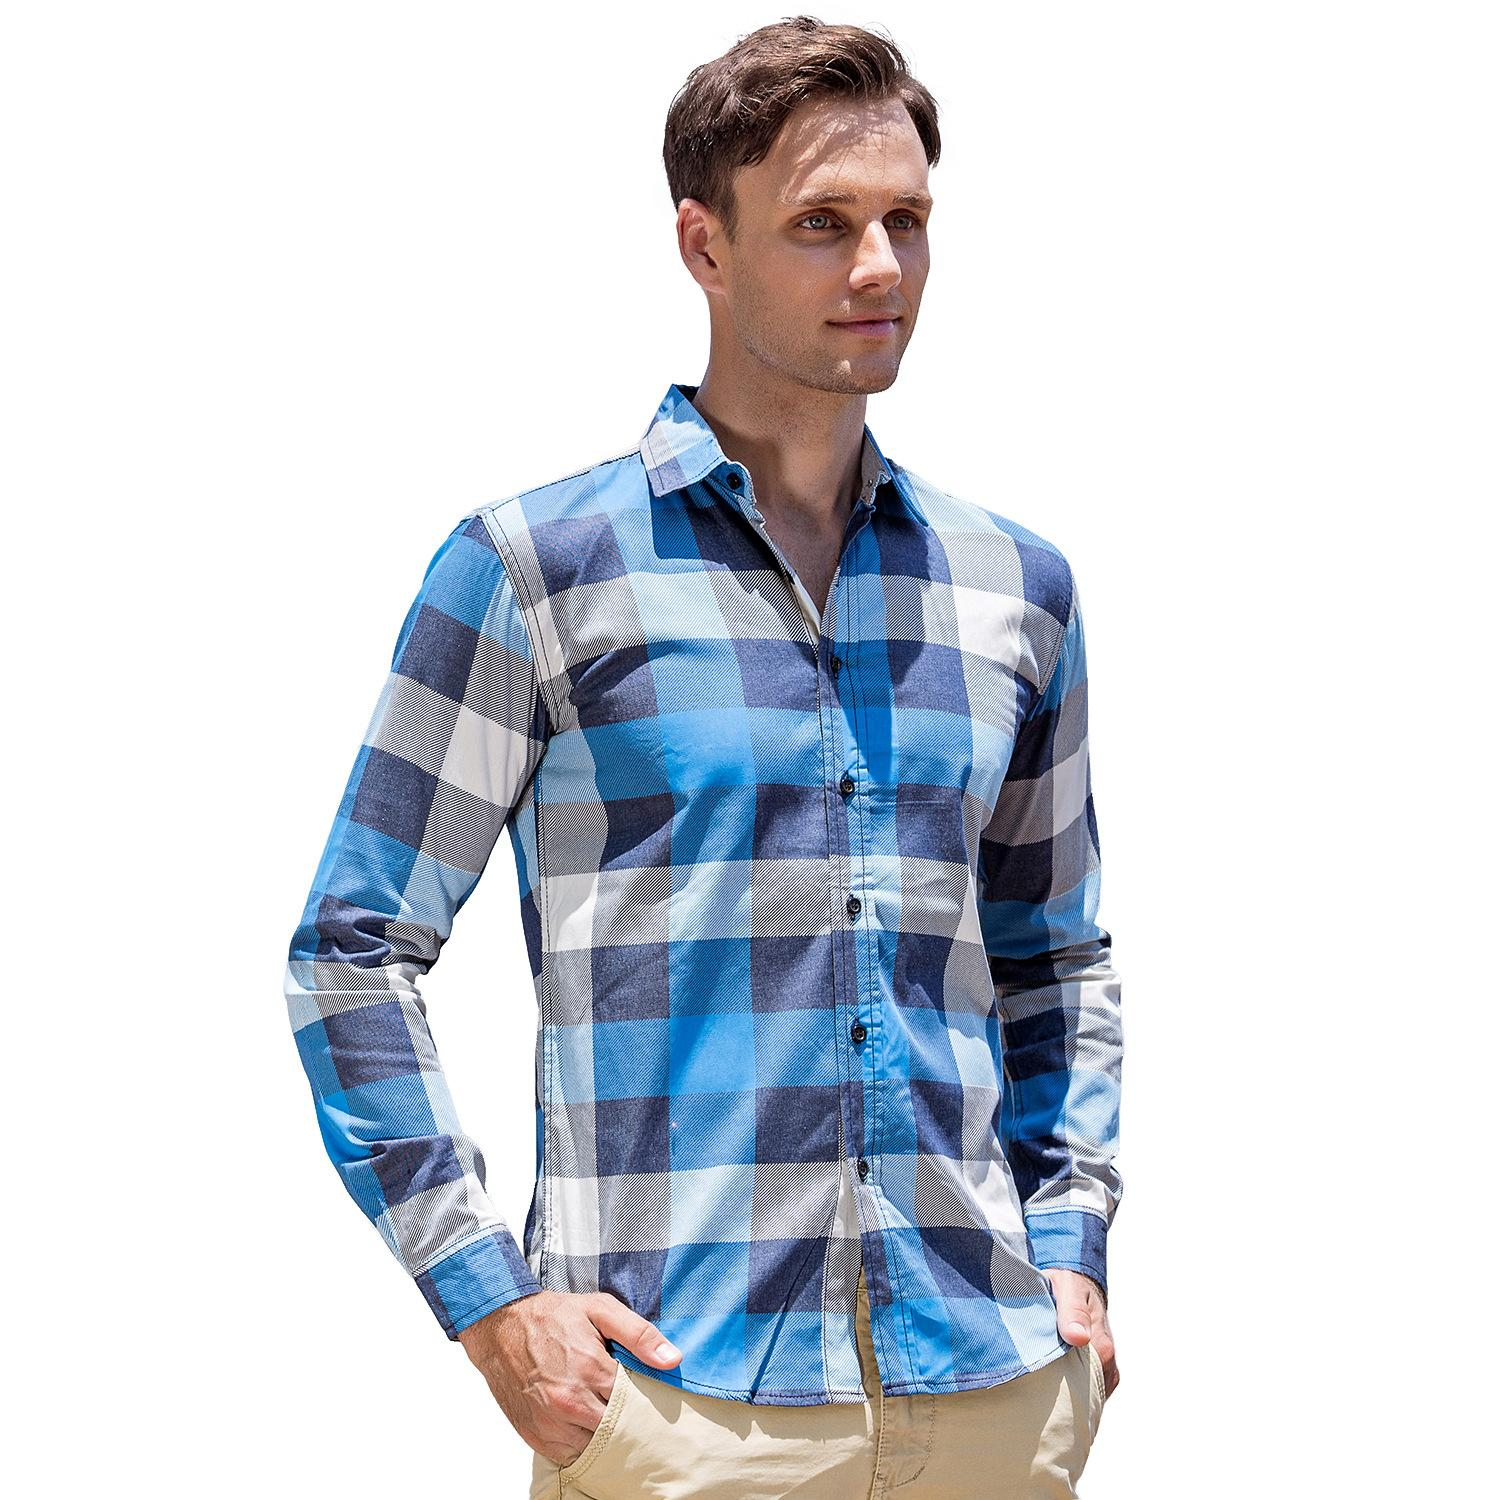 872094f3e5c7 Long Sleeve Plaid Shirts Man Dress Shirt Casual Denim Style Vintage ...